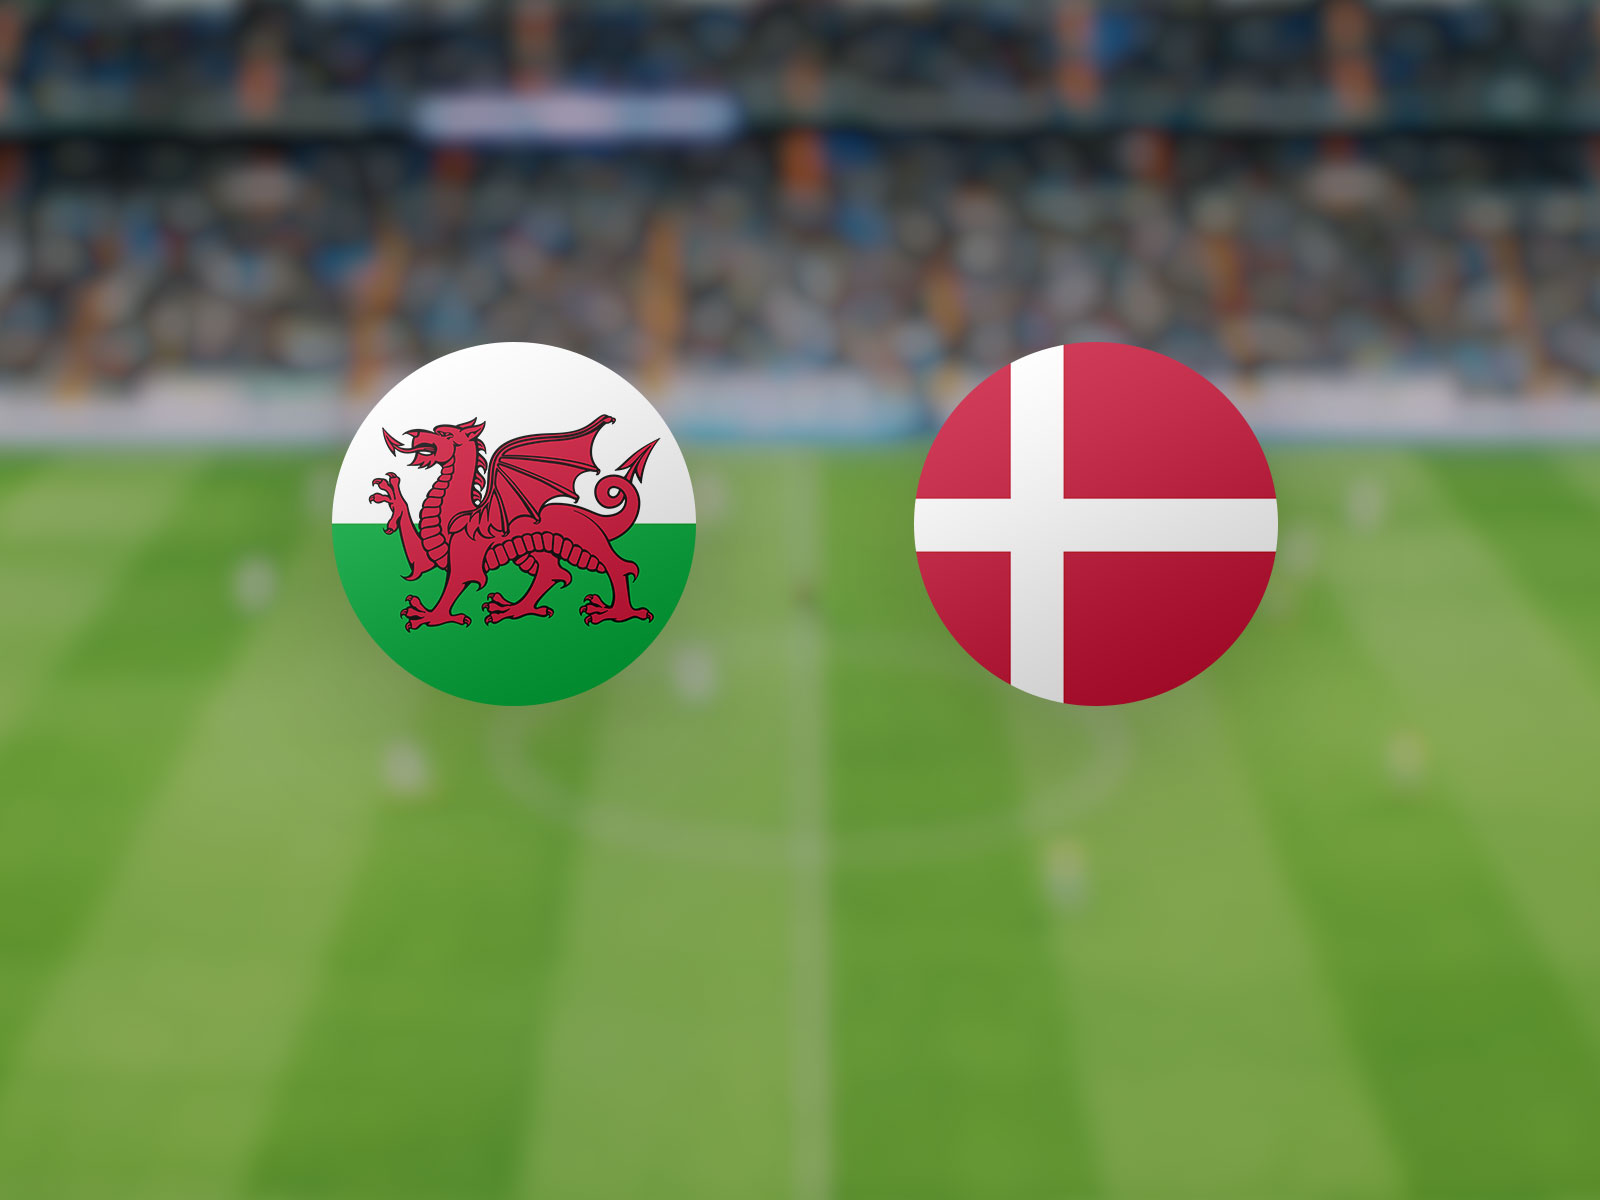 watch Wales vs Denmark in Euro 2020 last-16 knockout rounds